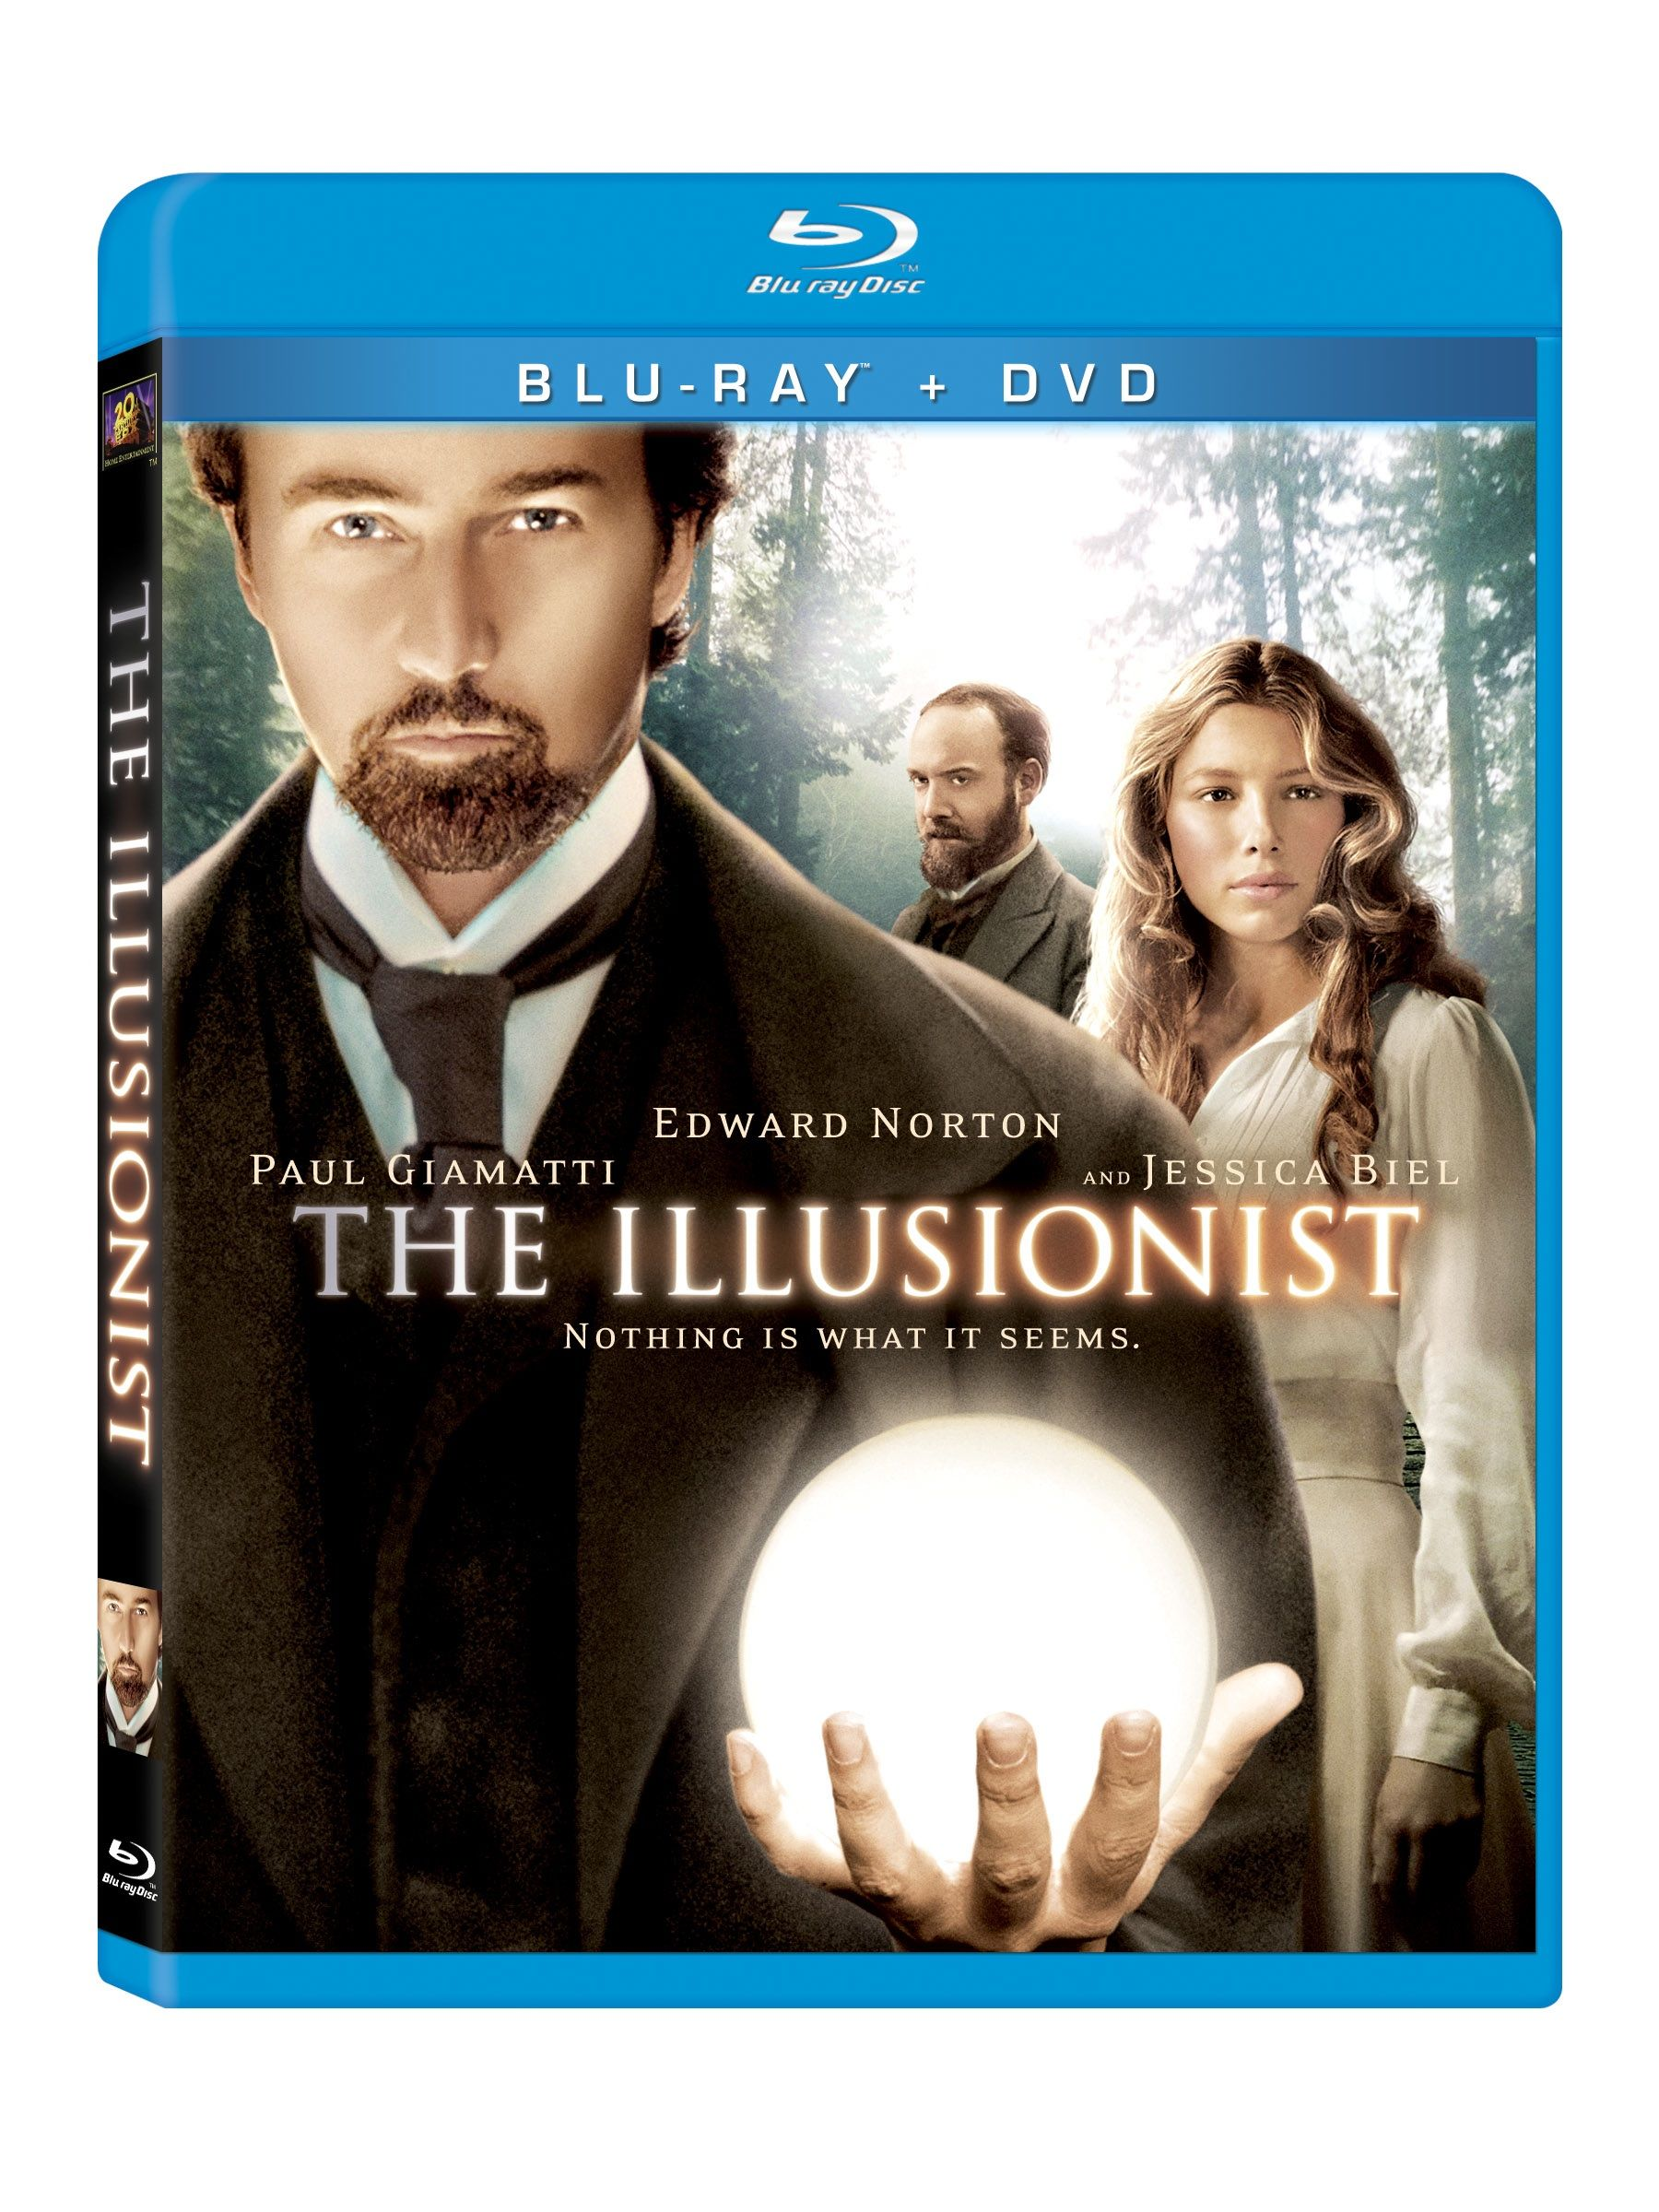 The Illustionist The illusionist, Edward norton, Movies